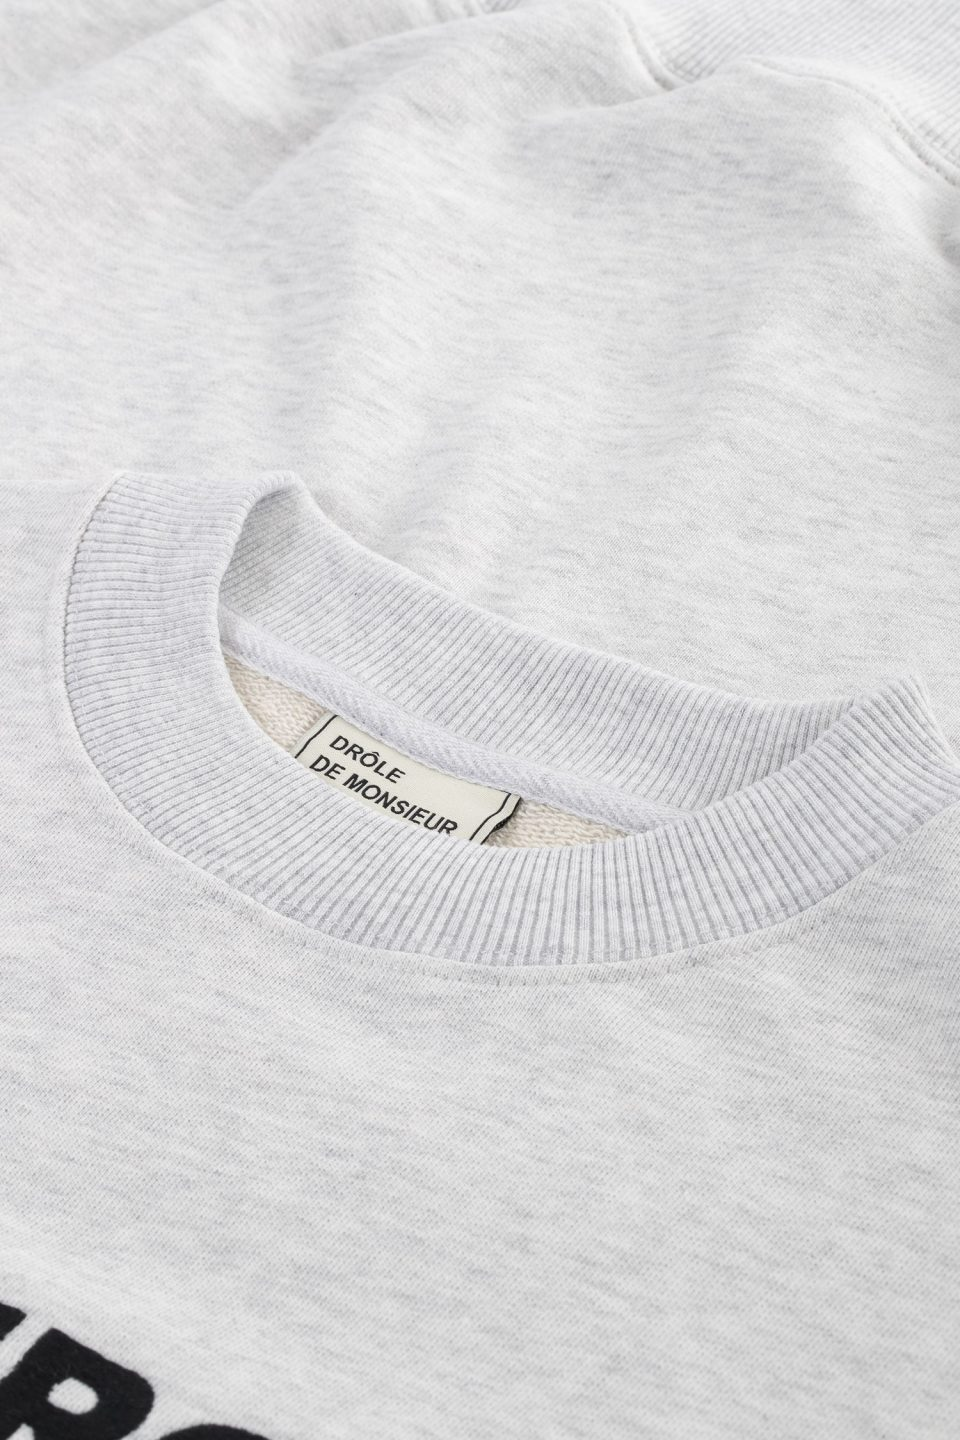 Slogan Embroidered Sweatshirt